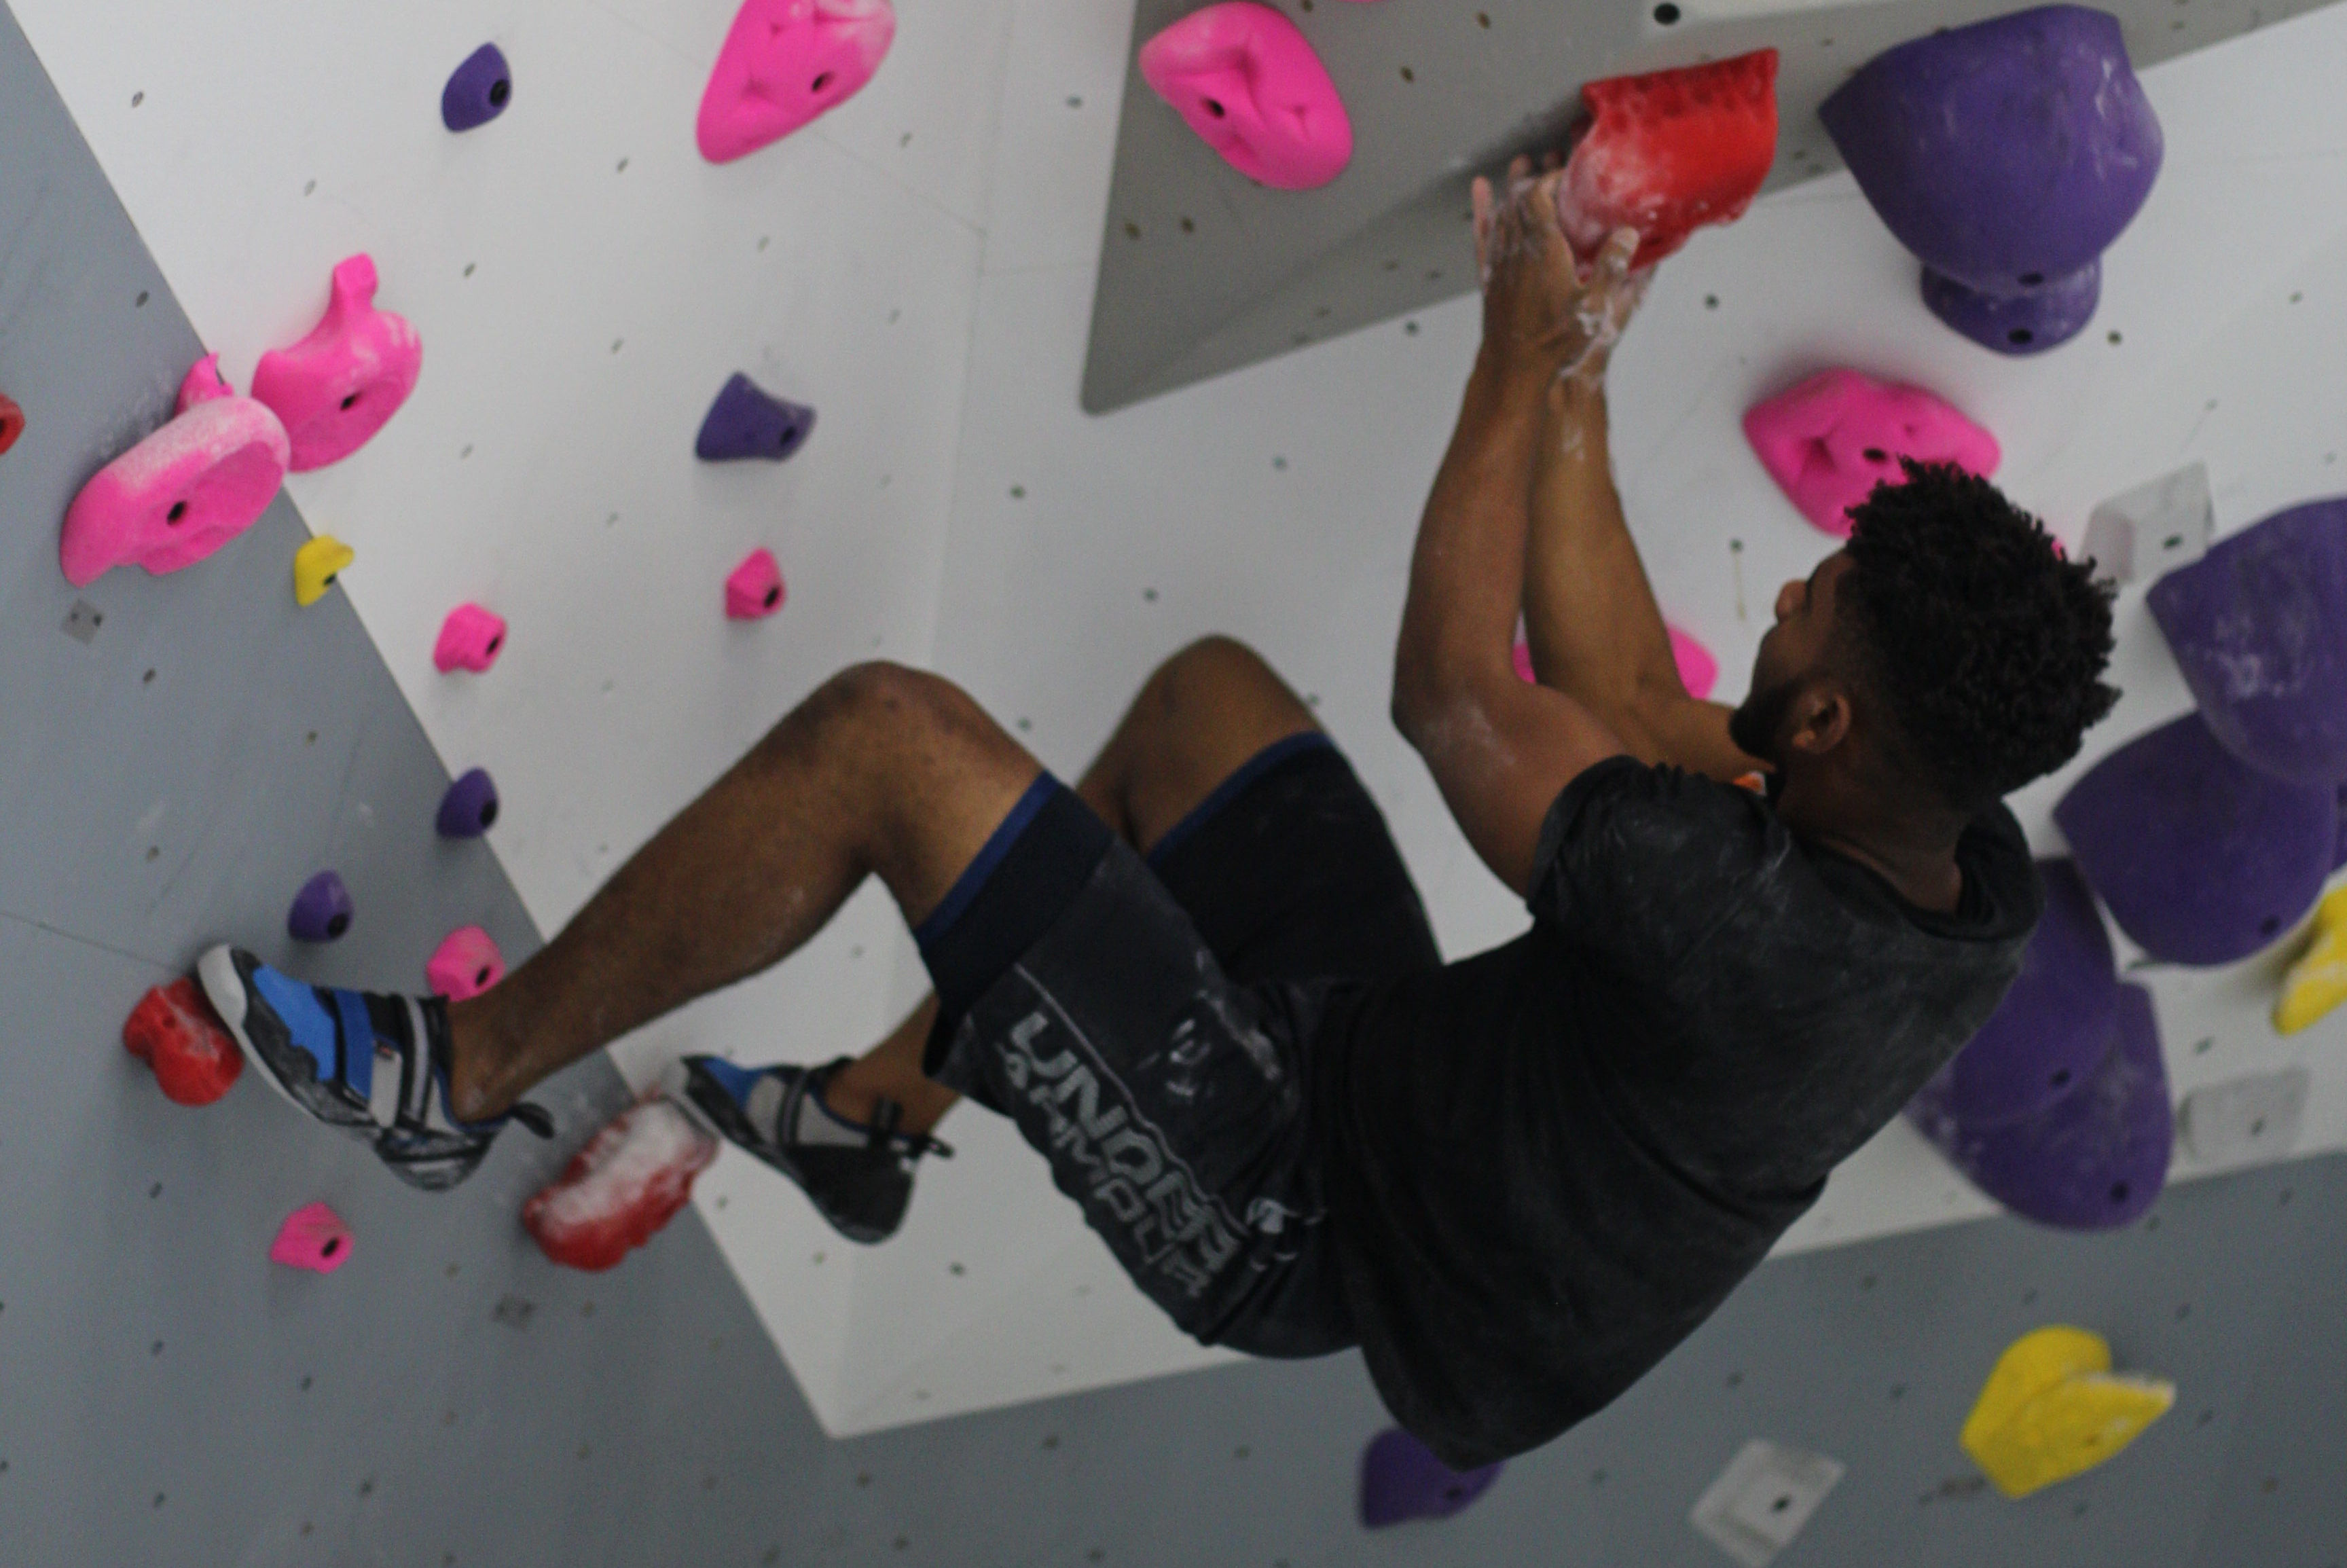 Climing wall testing before grand opening ofgp6r